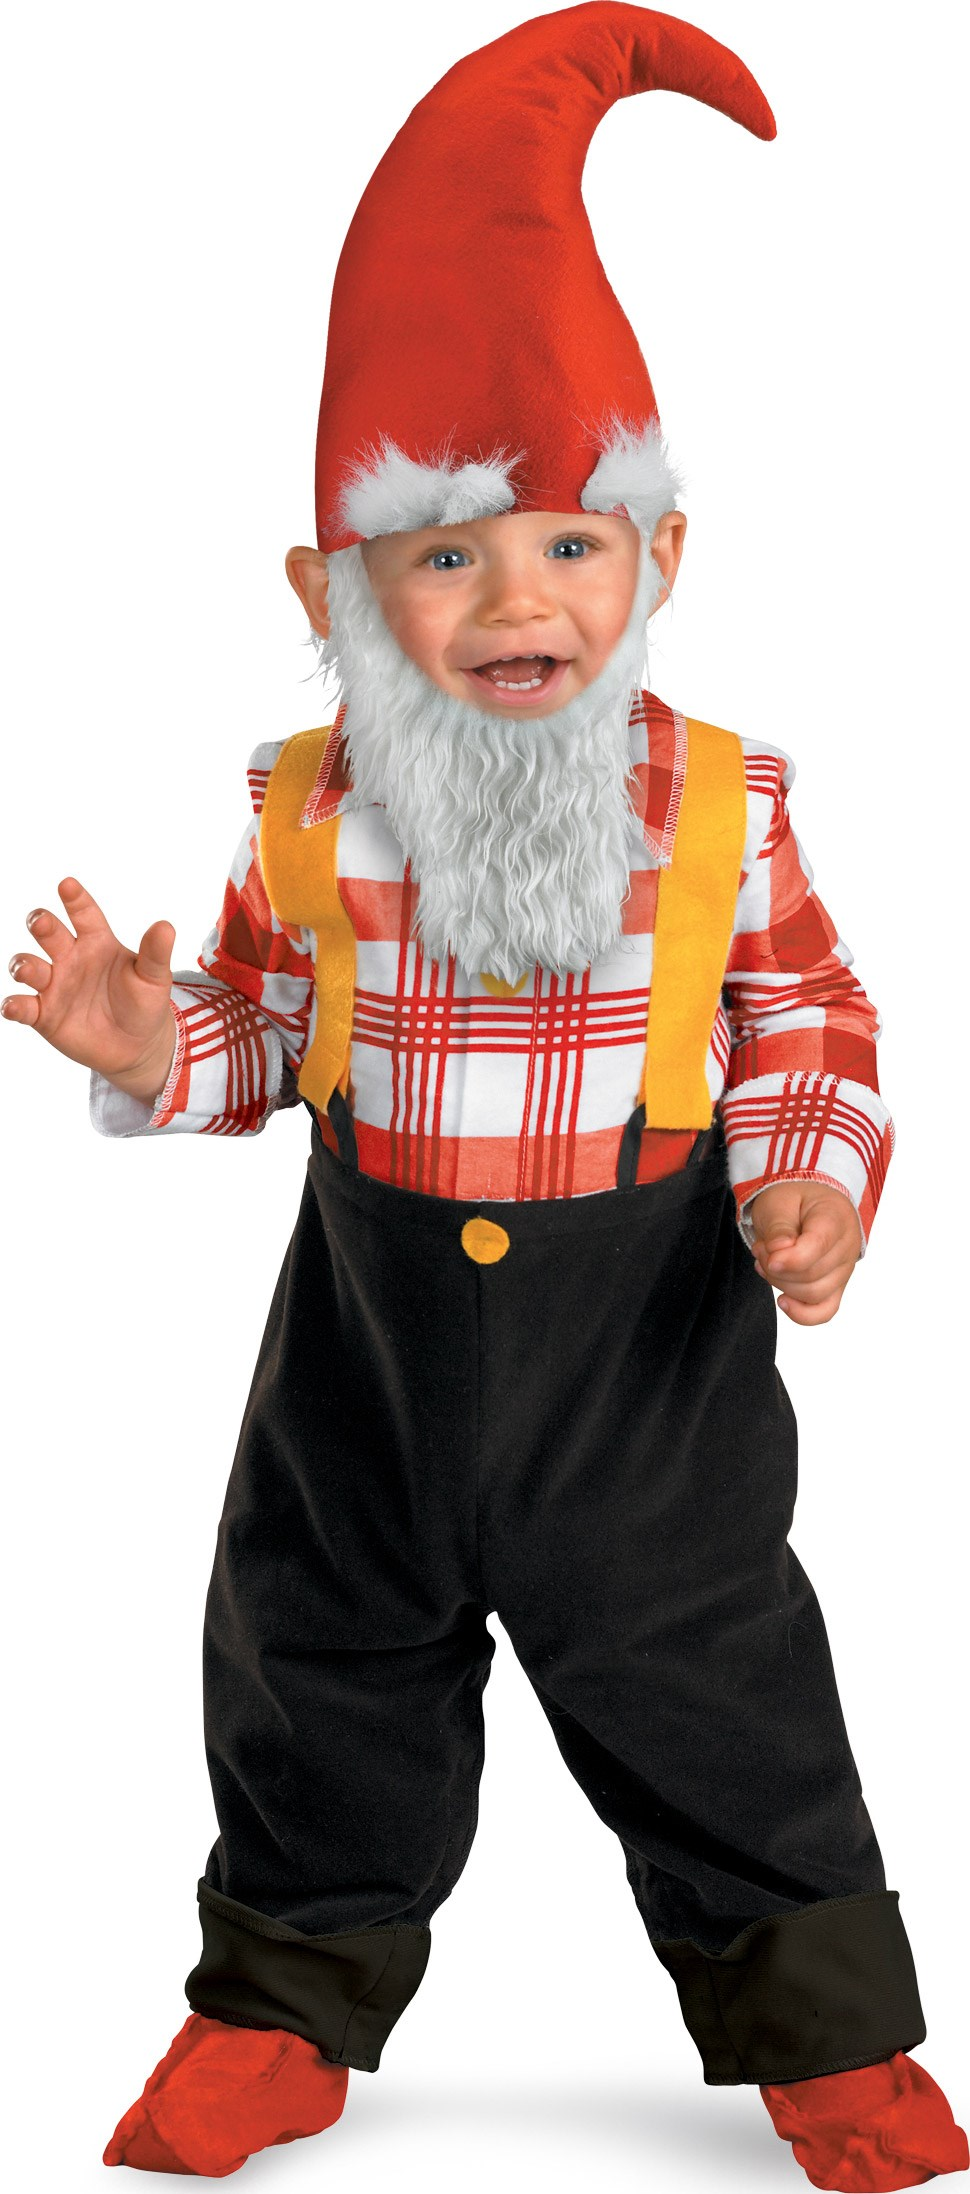 Garden Gnome Infant / Toddler Costume Small (2T)